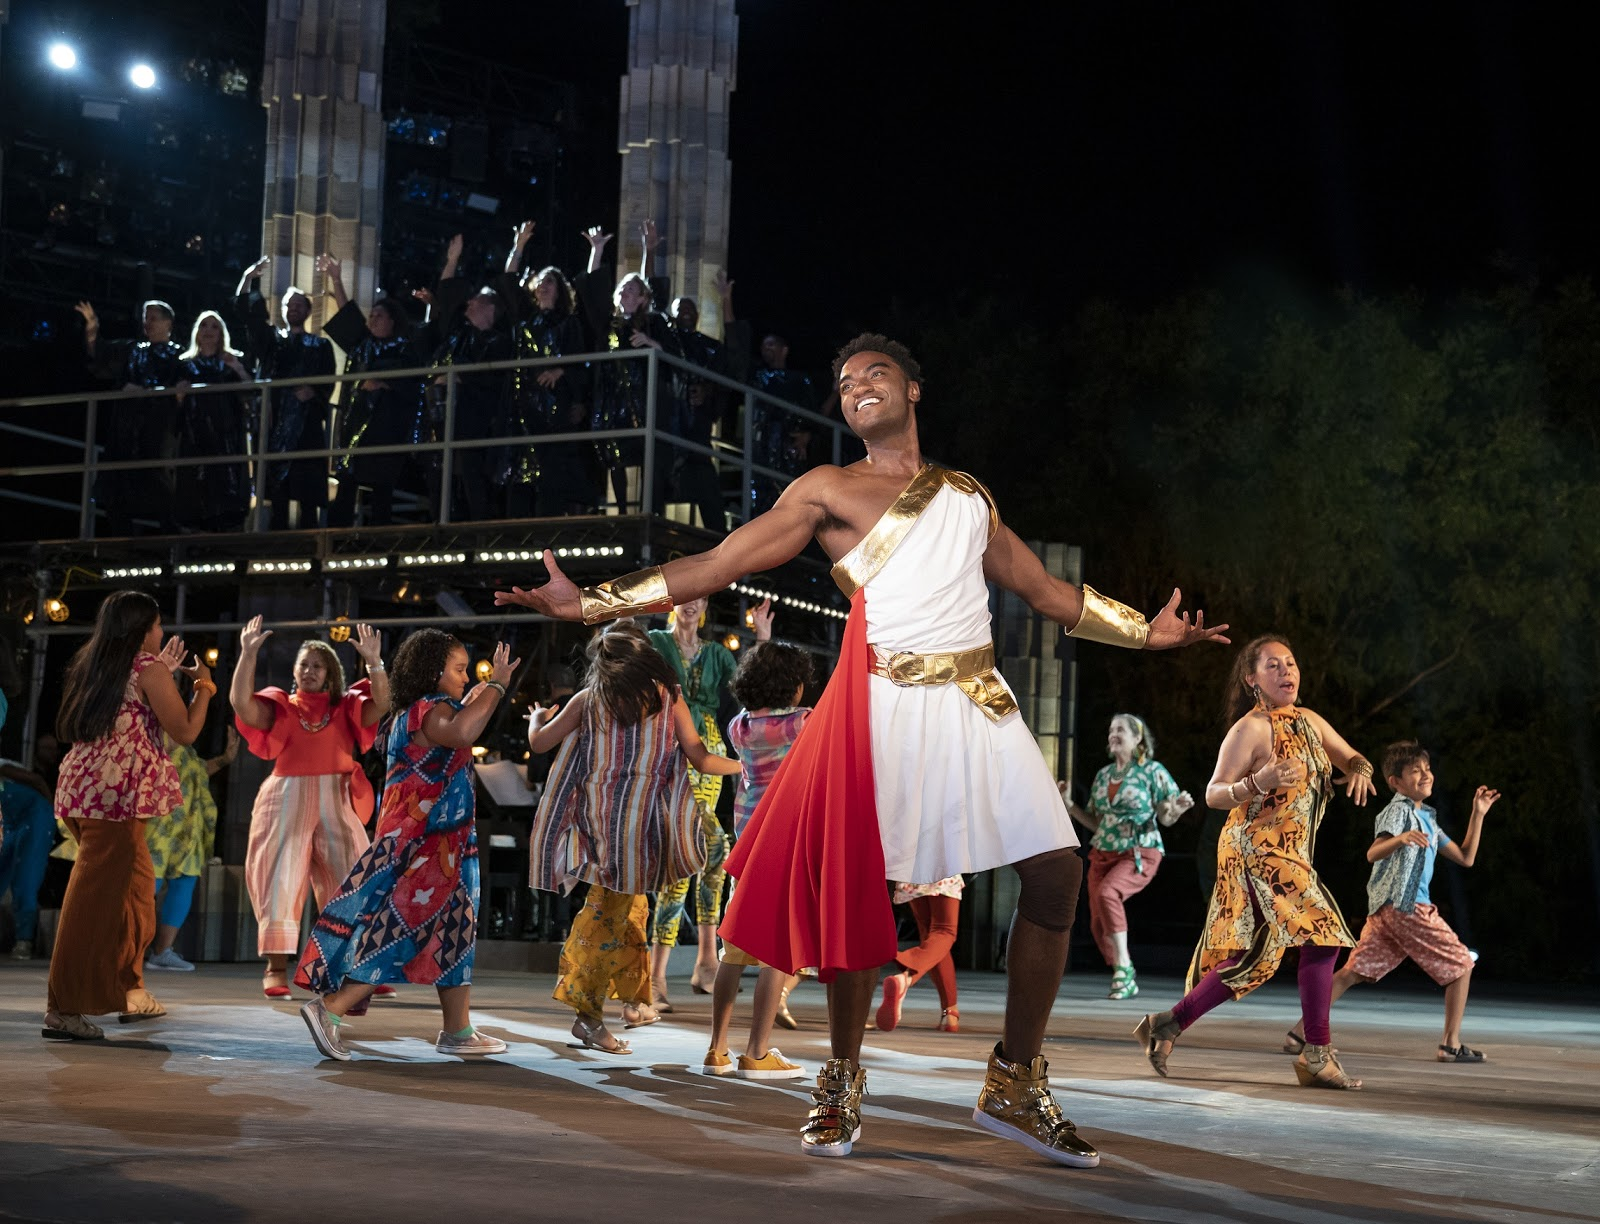 Jelani Alladin (foreground) and the company of The Public Theater's free Public Works musical adaptation of Hercules, with music by Alan Menken, lyrics by David Zippel, book by Kristoffer Diaz, choreography by Chase Brock, and directed by Lear deBessonet, running at the Delacorte Theater. Photo credit: Joan Marcus.